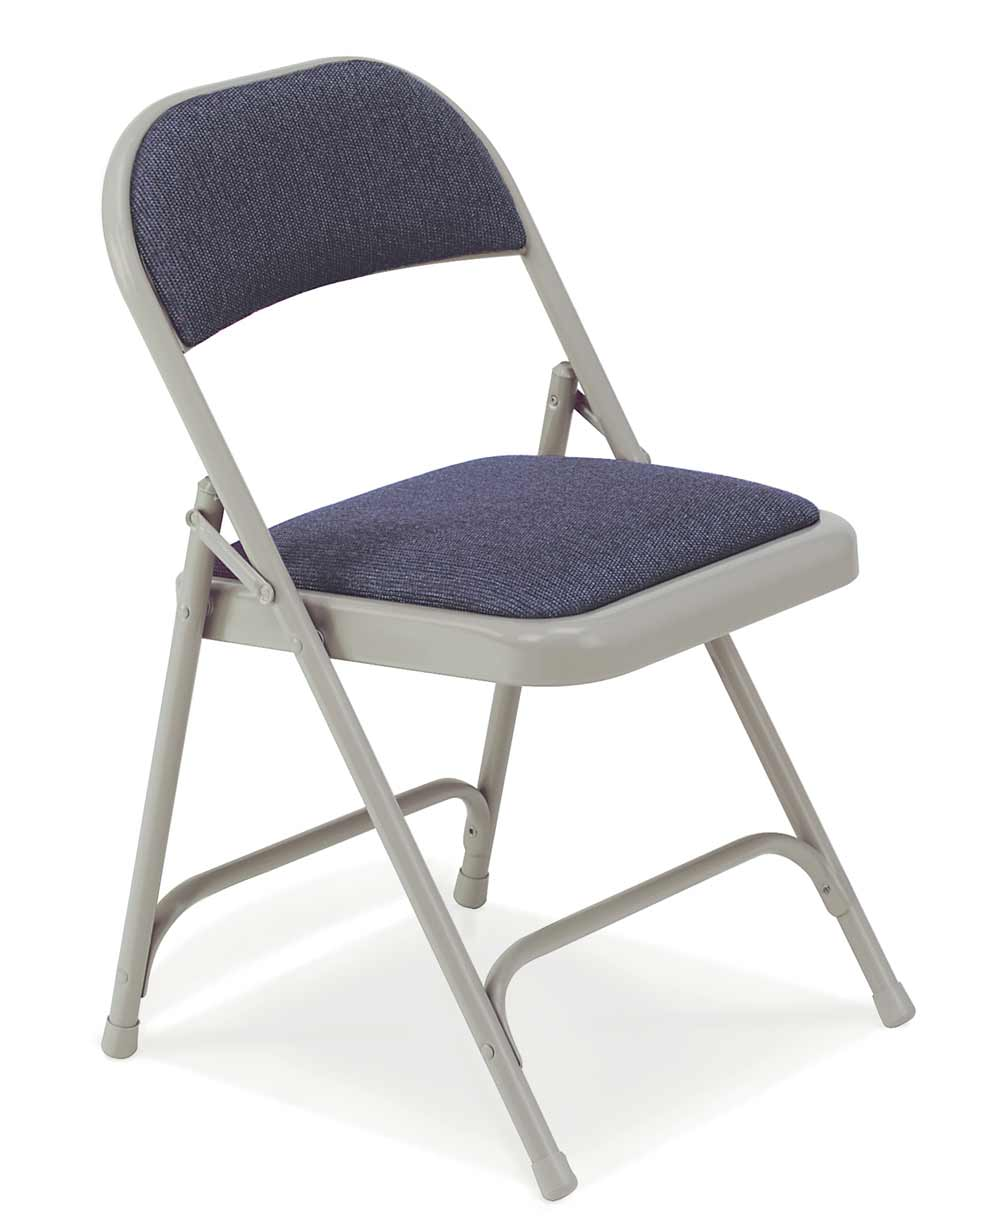 Upholstered virco folding chairs in padded seat